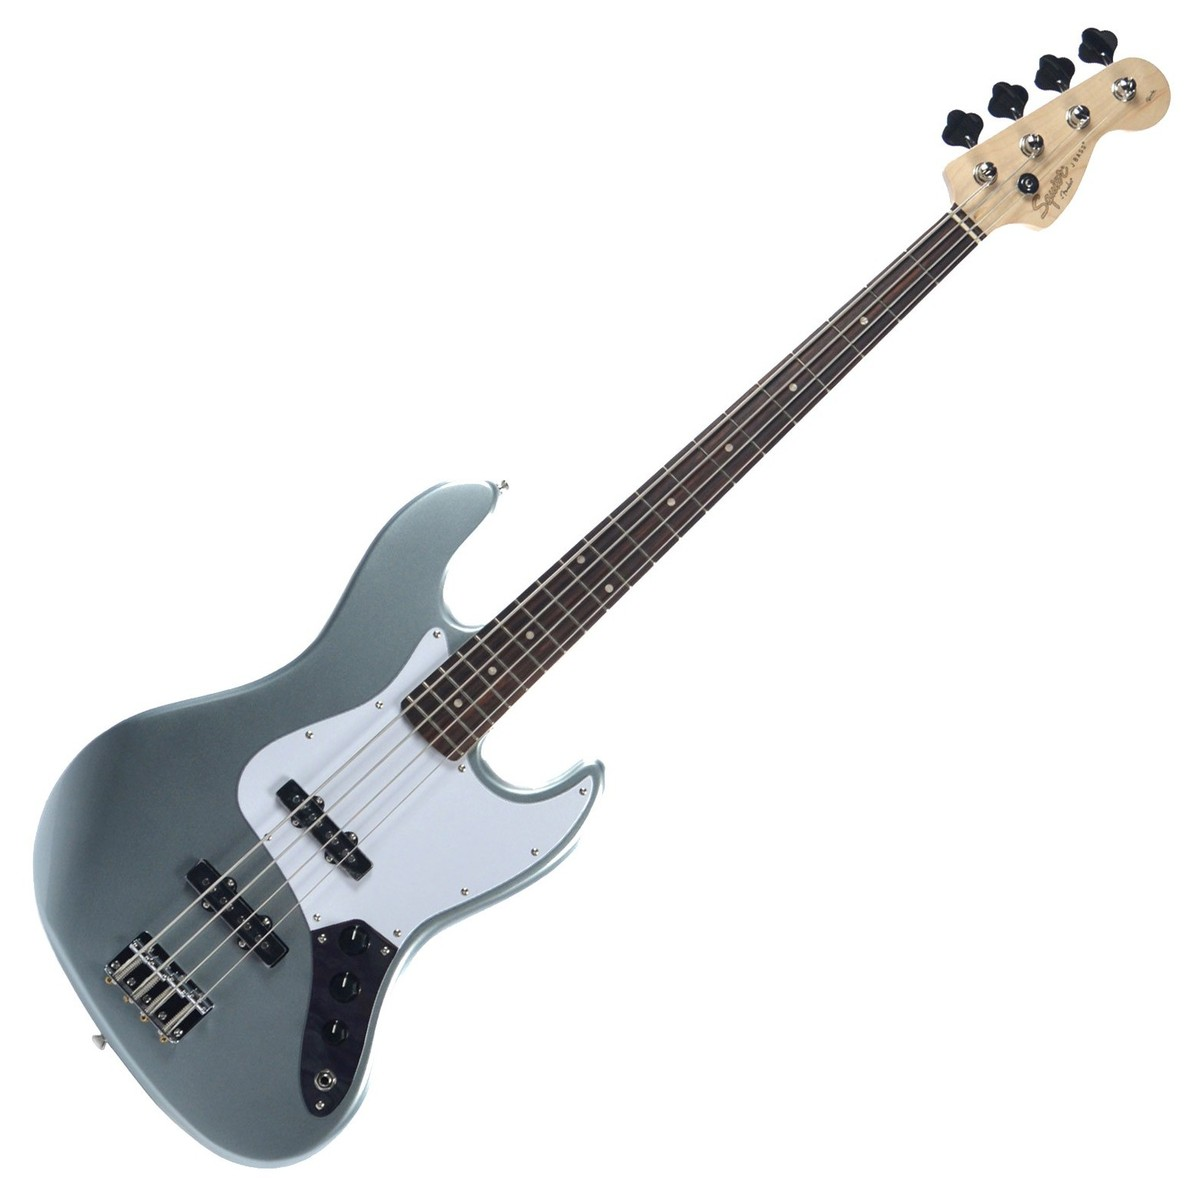 squier by fender affinity jazz bass guitar slick silver at gear4music. Black Bedroom Furniture Sets. Home Design Ideas